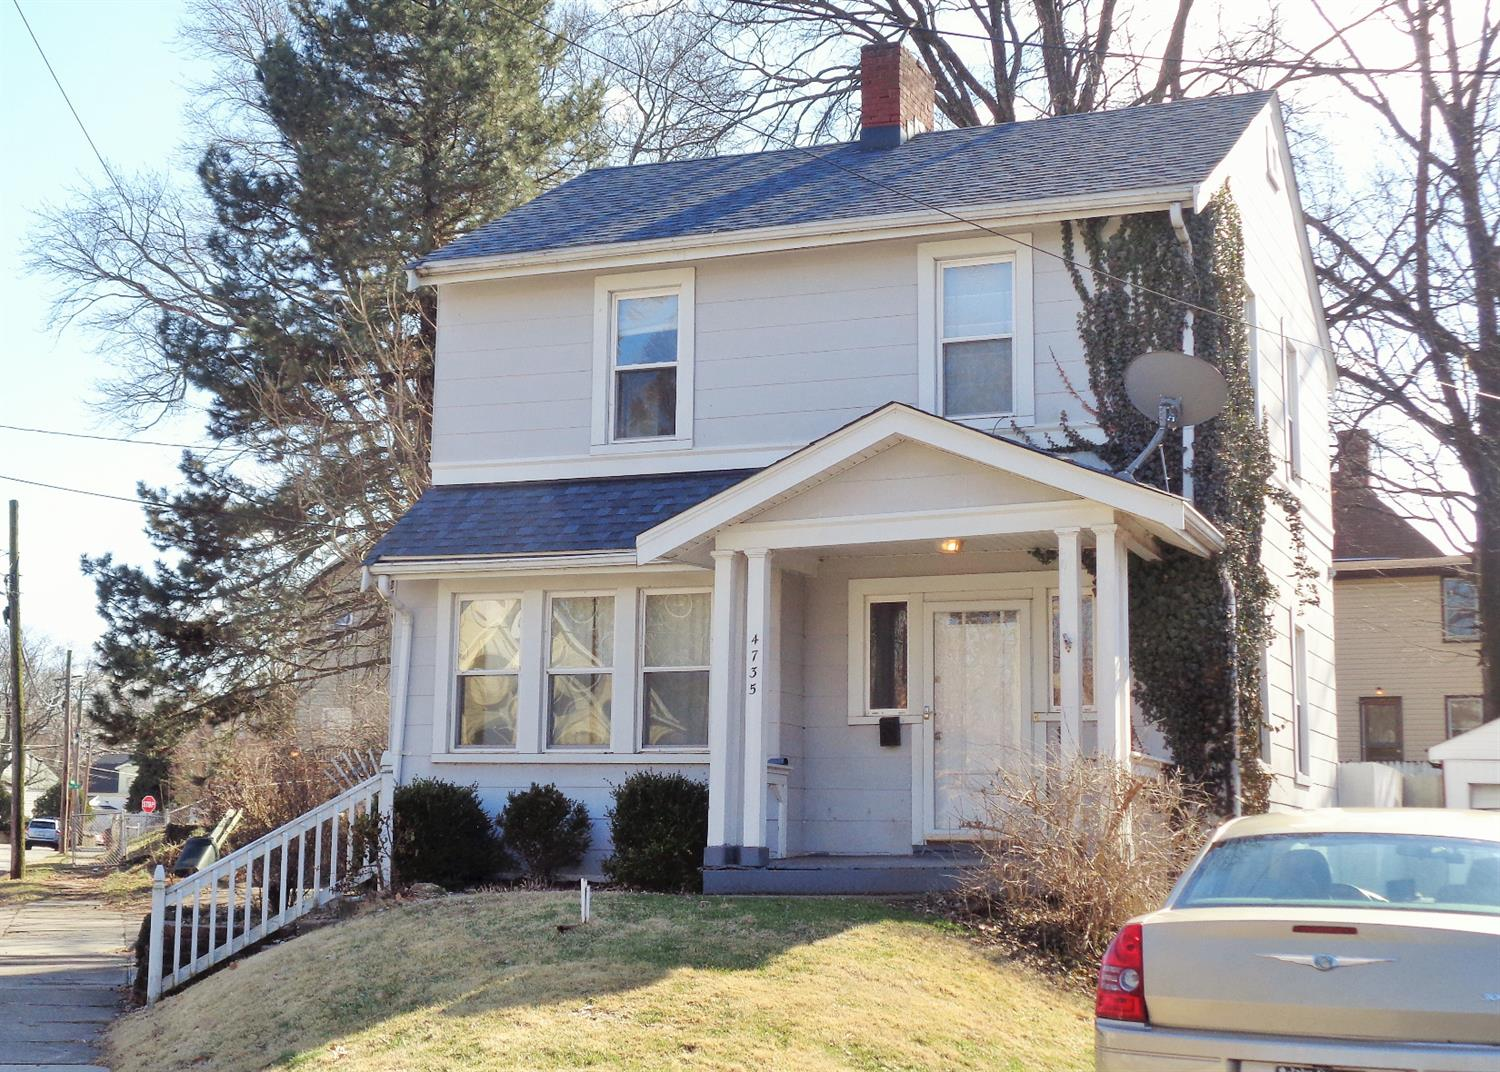 Property for sale at 4735 Ridgeway Avenue, Norwood,  OH 45212